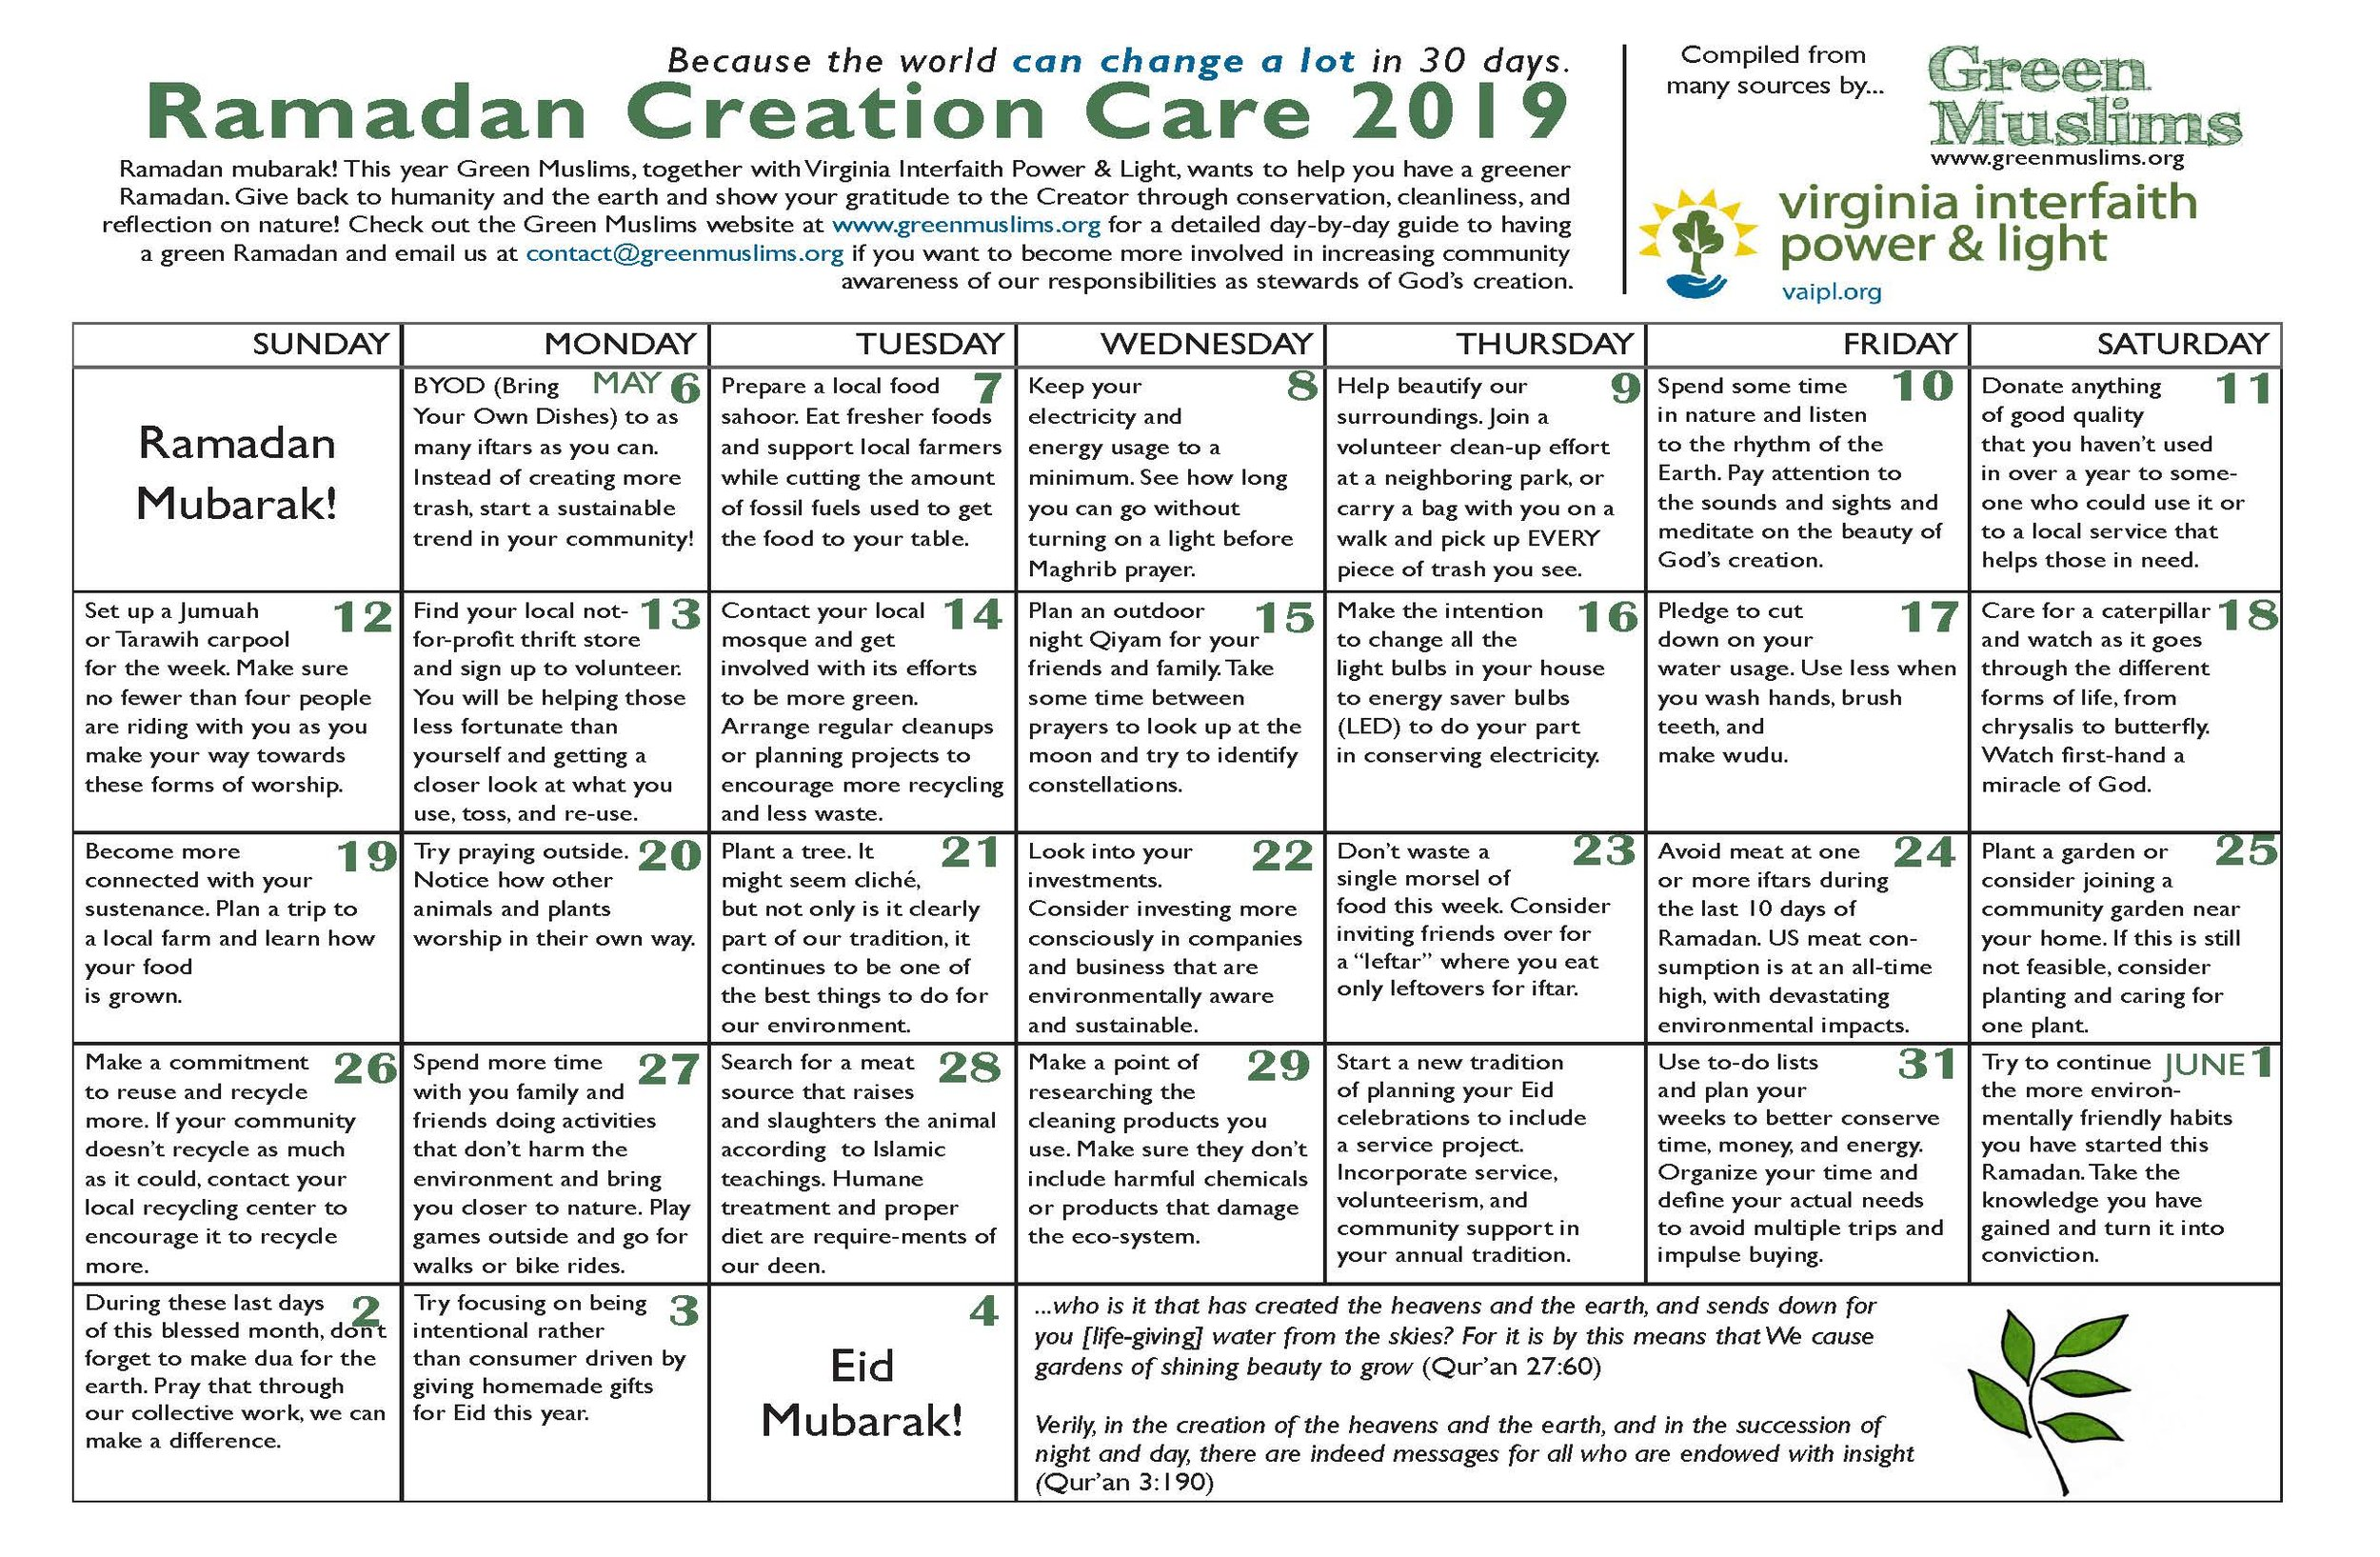 Green Muslims Ramadan Calendar is a joint efforts with our partners at Virginia Interfaith Power & Light.